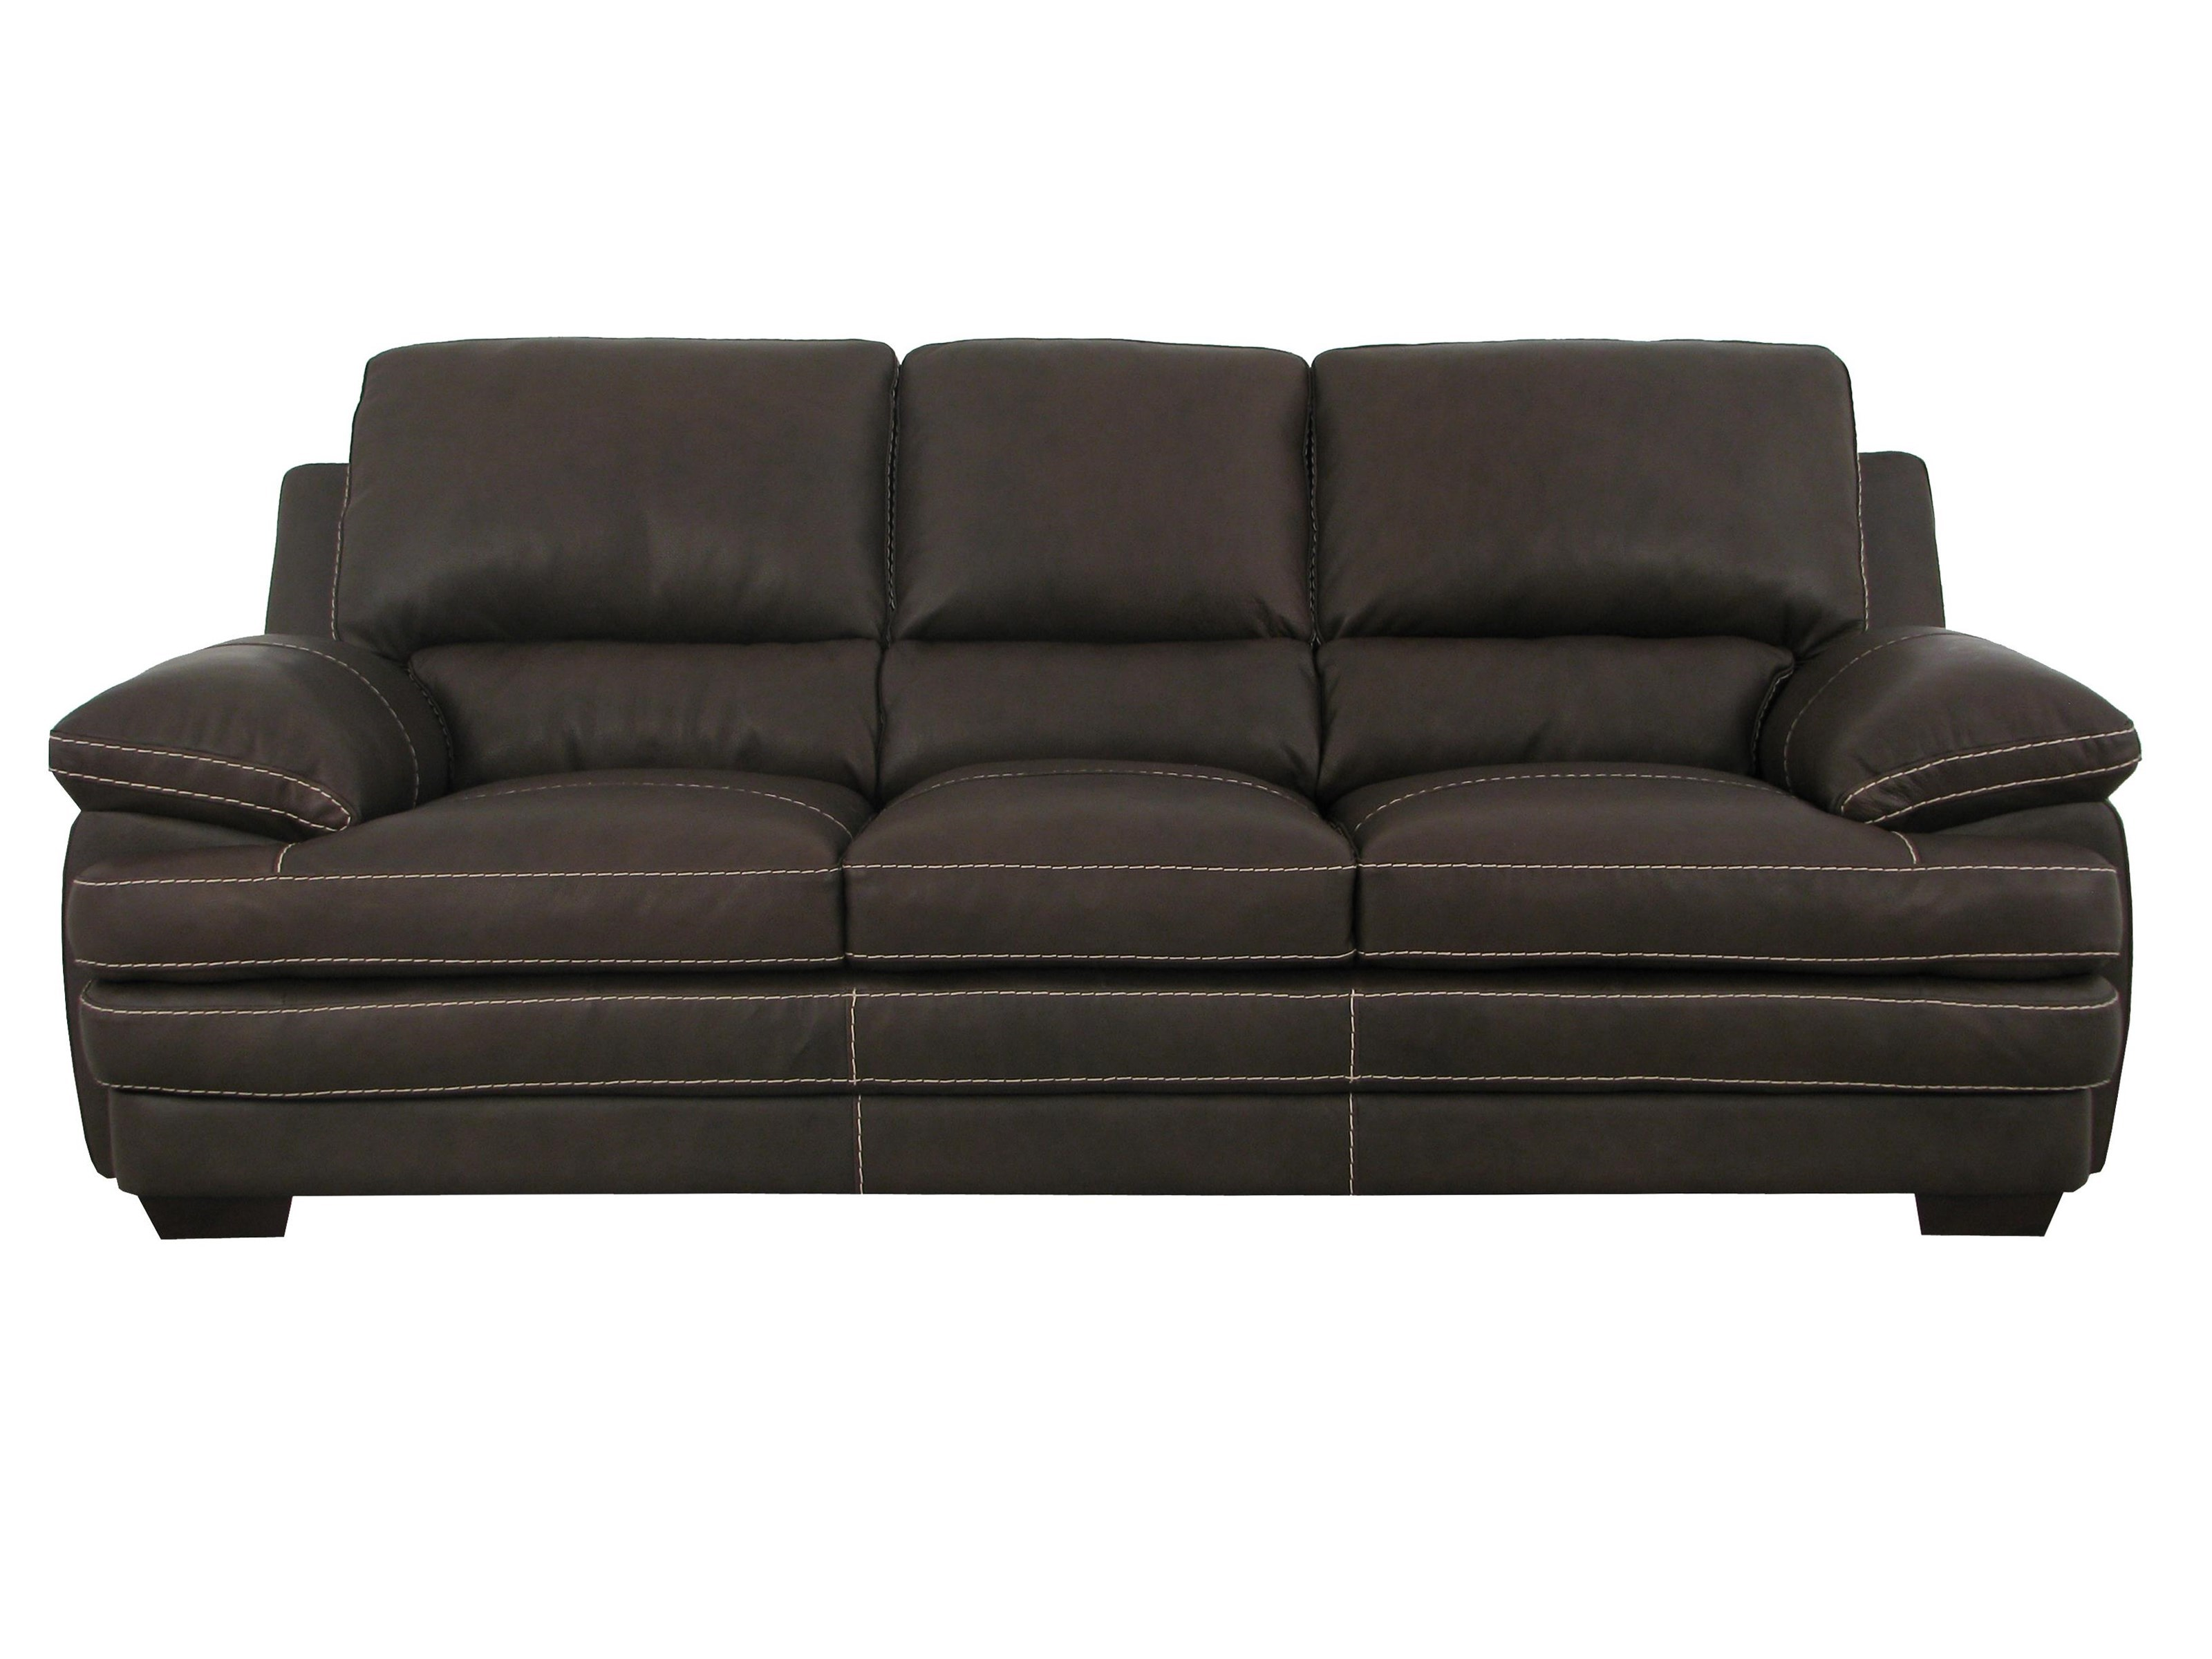 Incroyable Soft Line 4806Leather Sofa